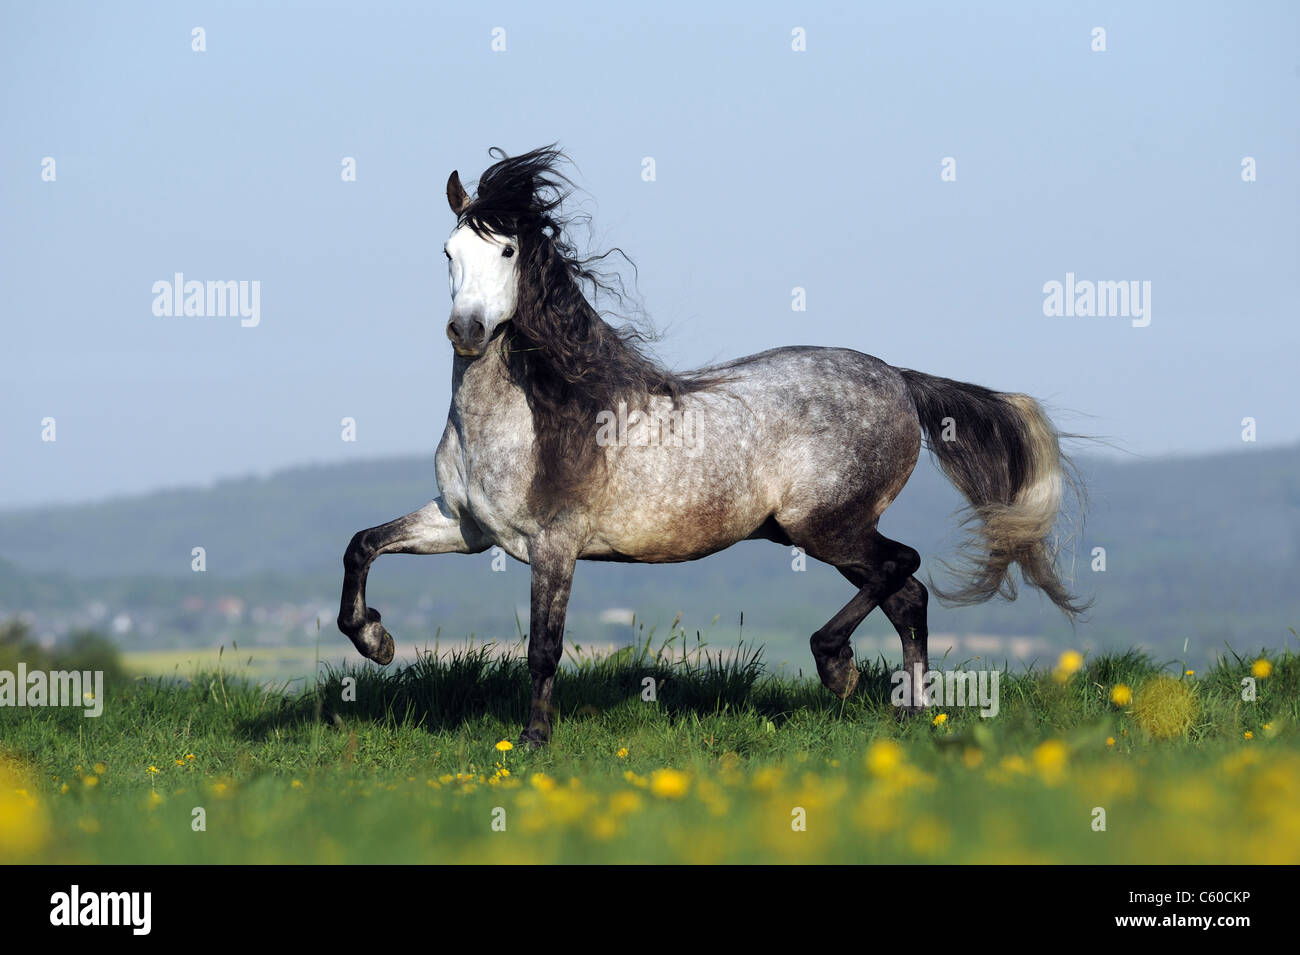 Andalusian Horse (Equus ferus caballus). Dapple-gray stallion in a trot on a meadow. - Stock Image